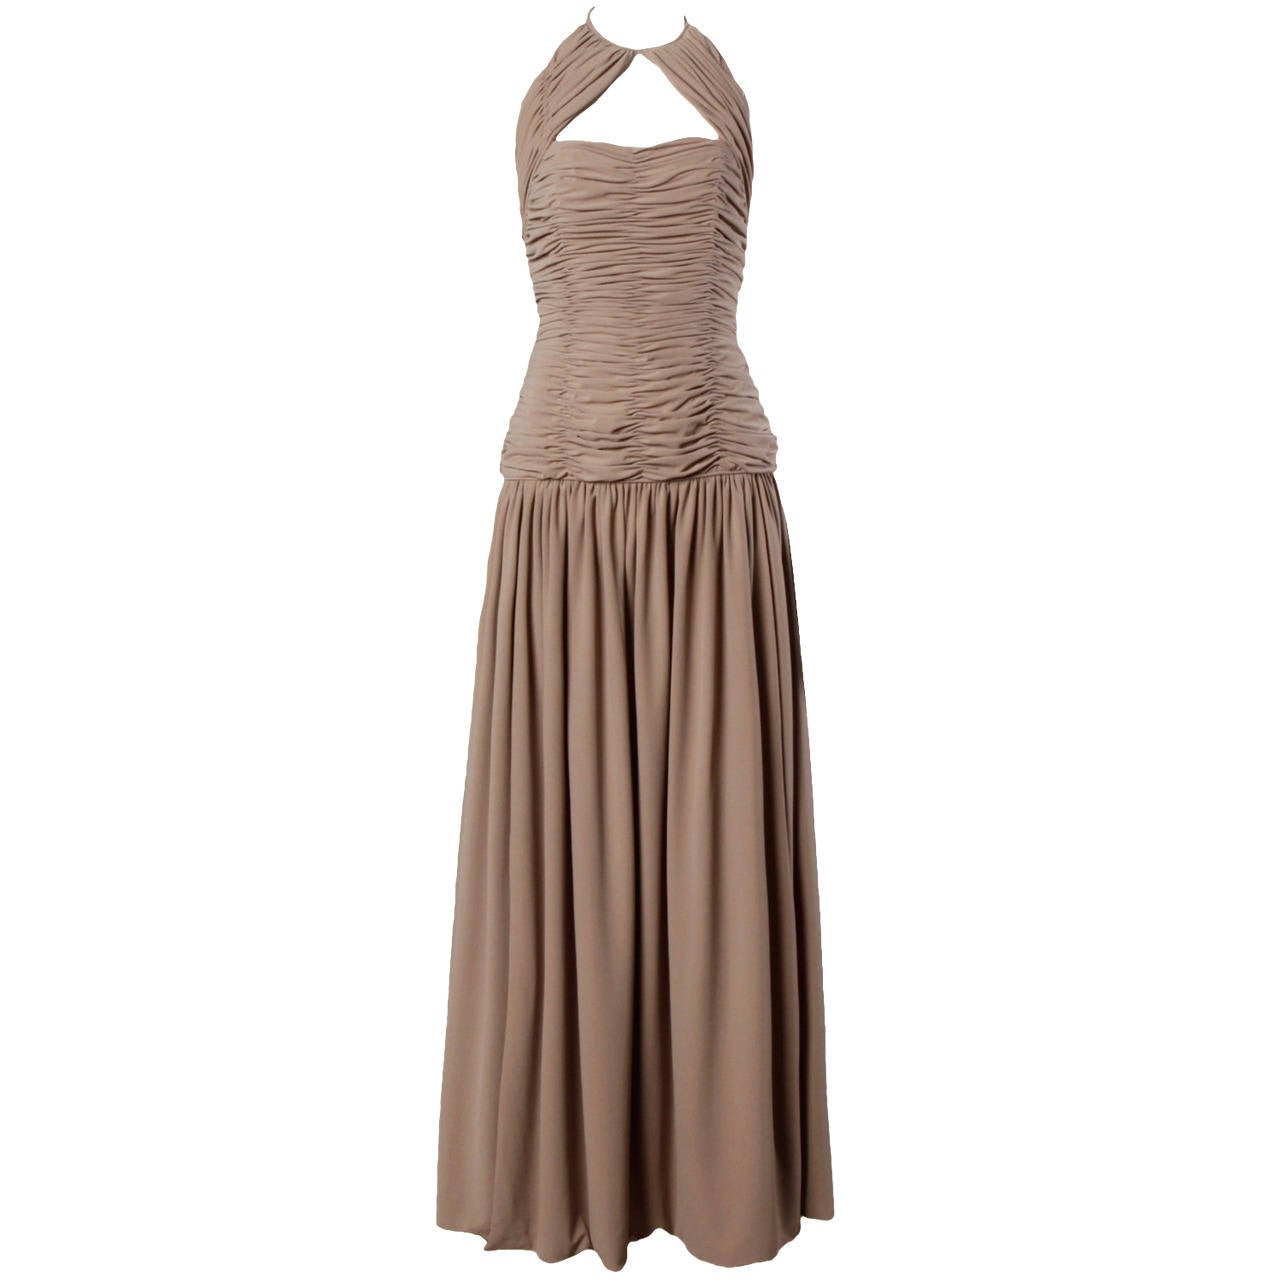 Victor Costa Deadstock Vintage Nude Halter Dress with Original Tags For Sale